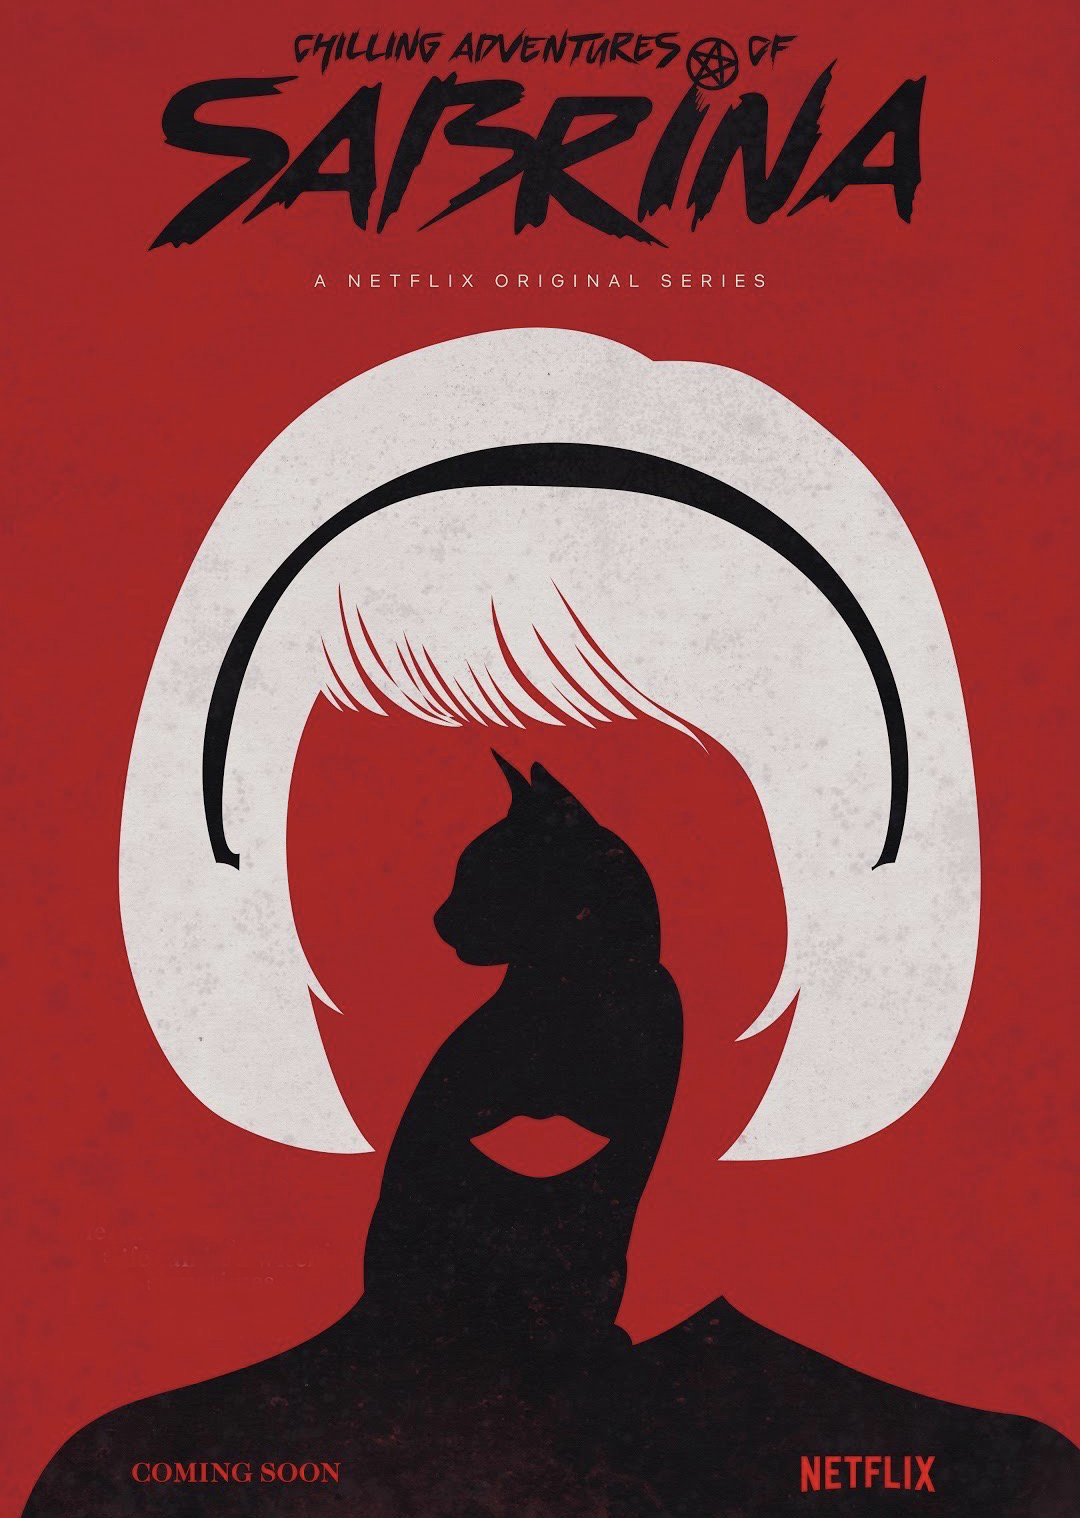 chilling-adventures-of-sabrina-poster.jpg